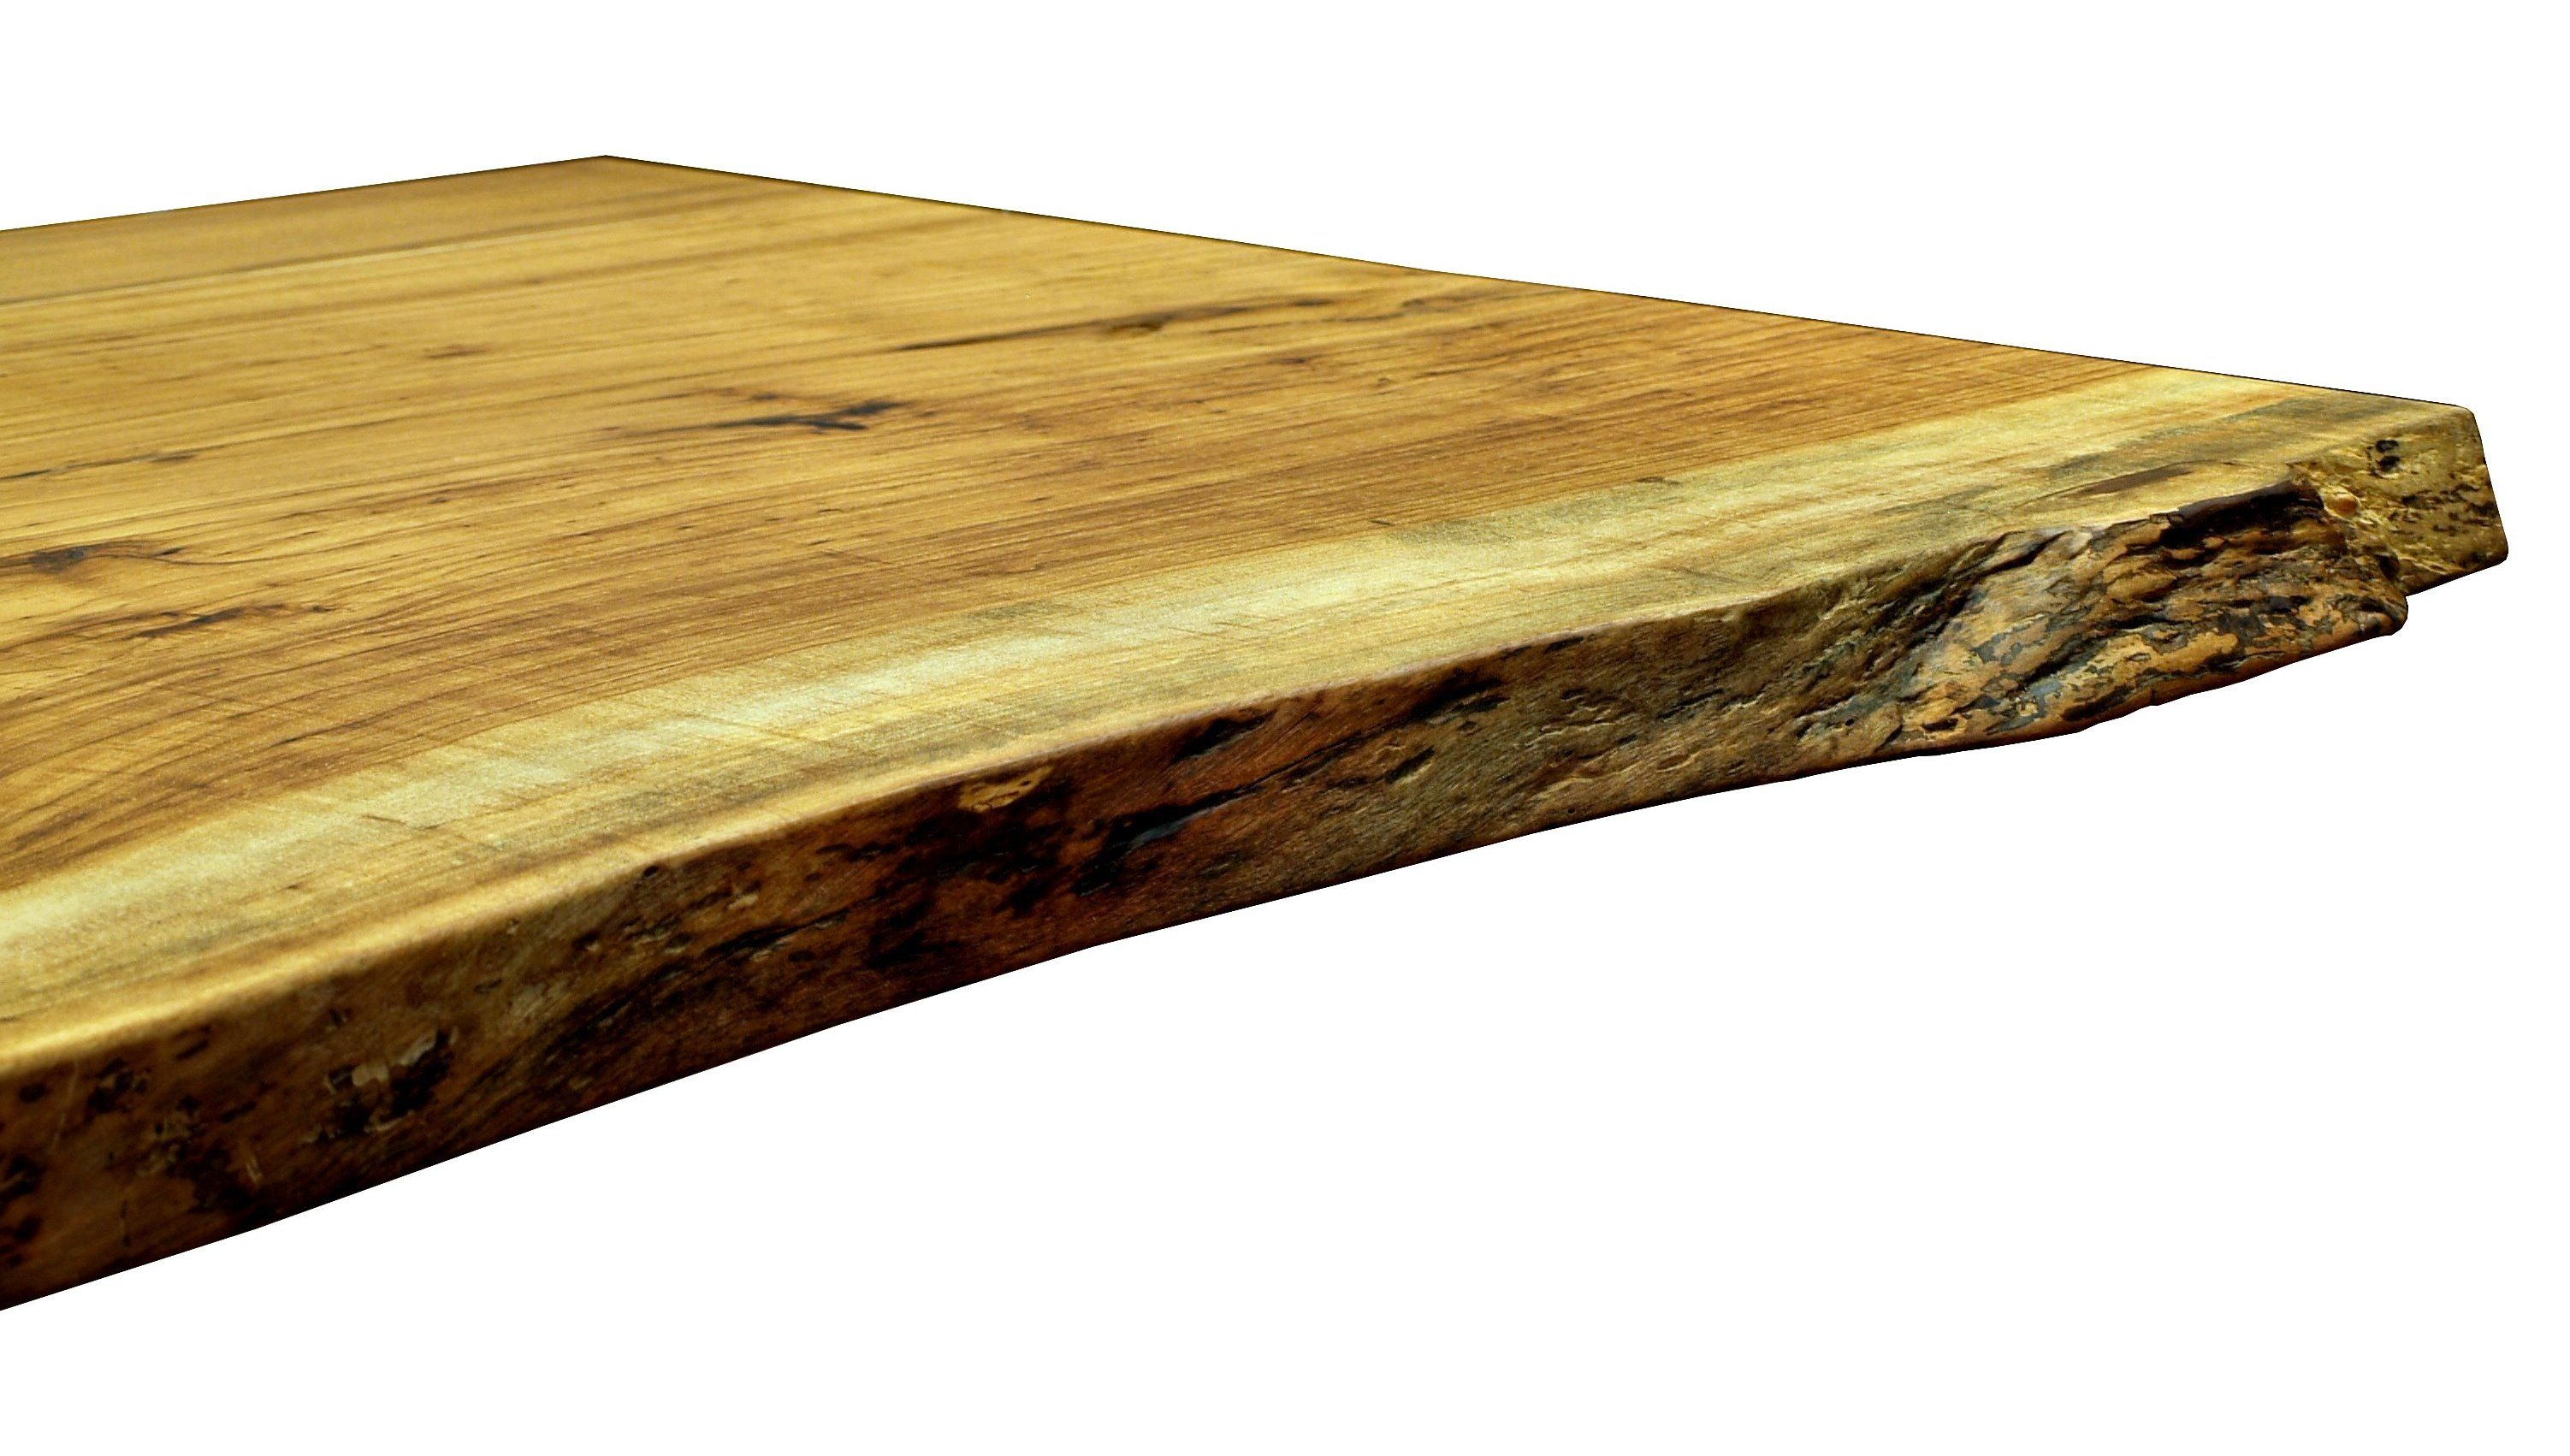 Pecan slab table top with Natural Edges and a Tung Oil Citrus finish. Natural Edges  Wane edges  on Custom Wood Countertops and Table Tops